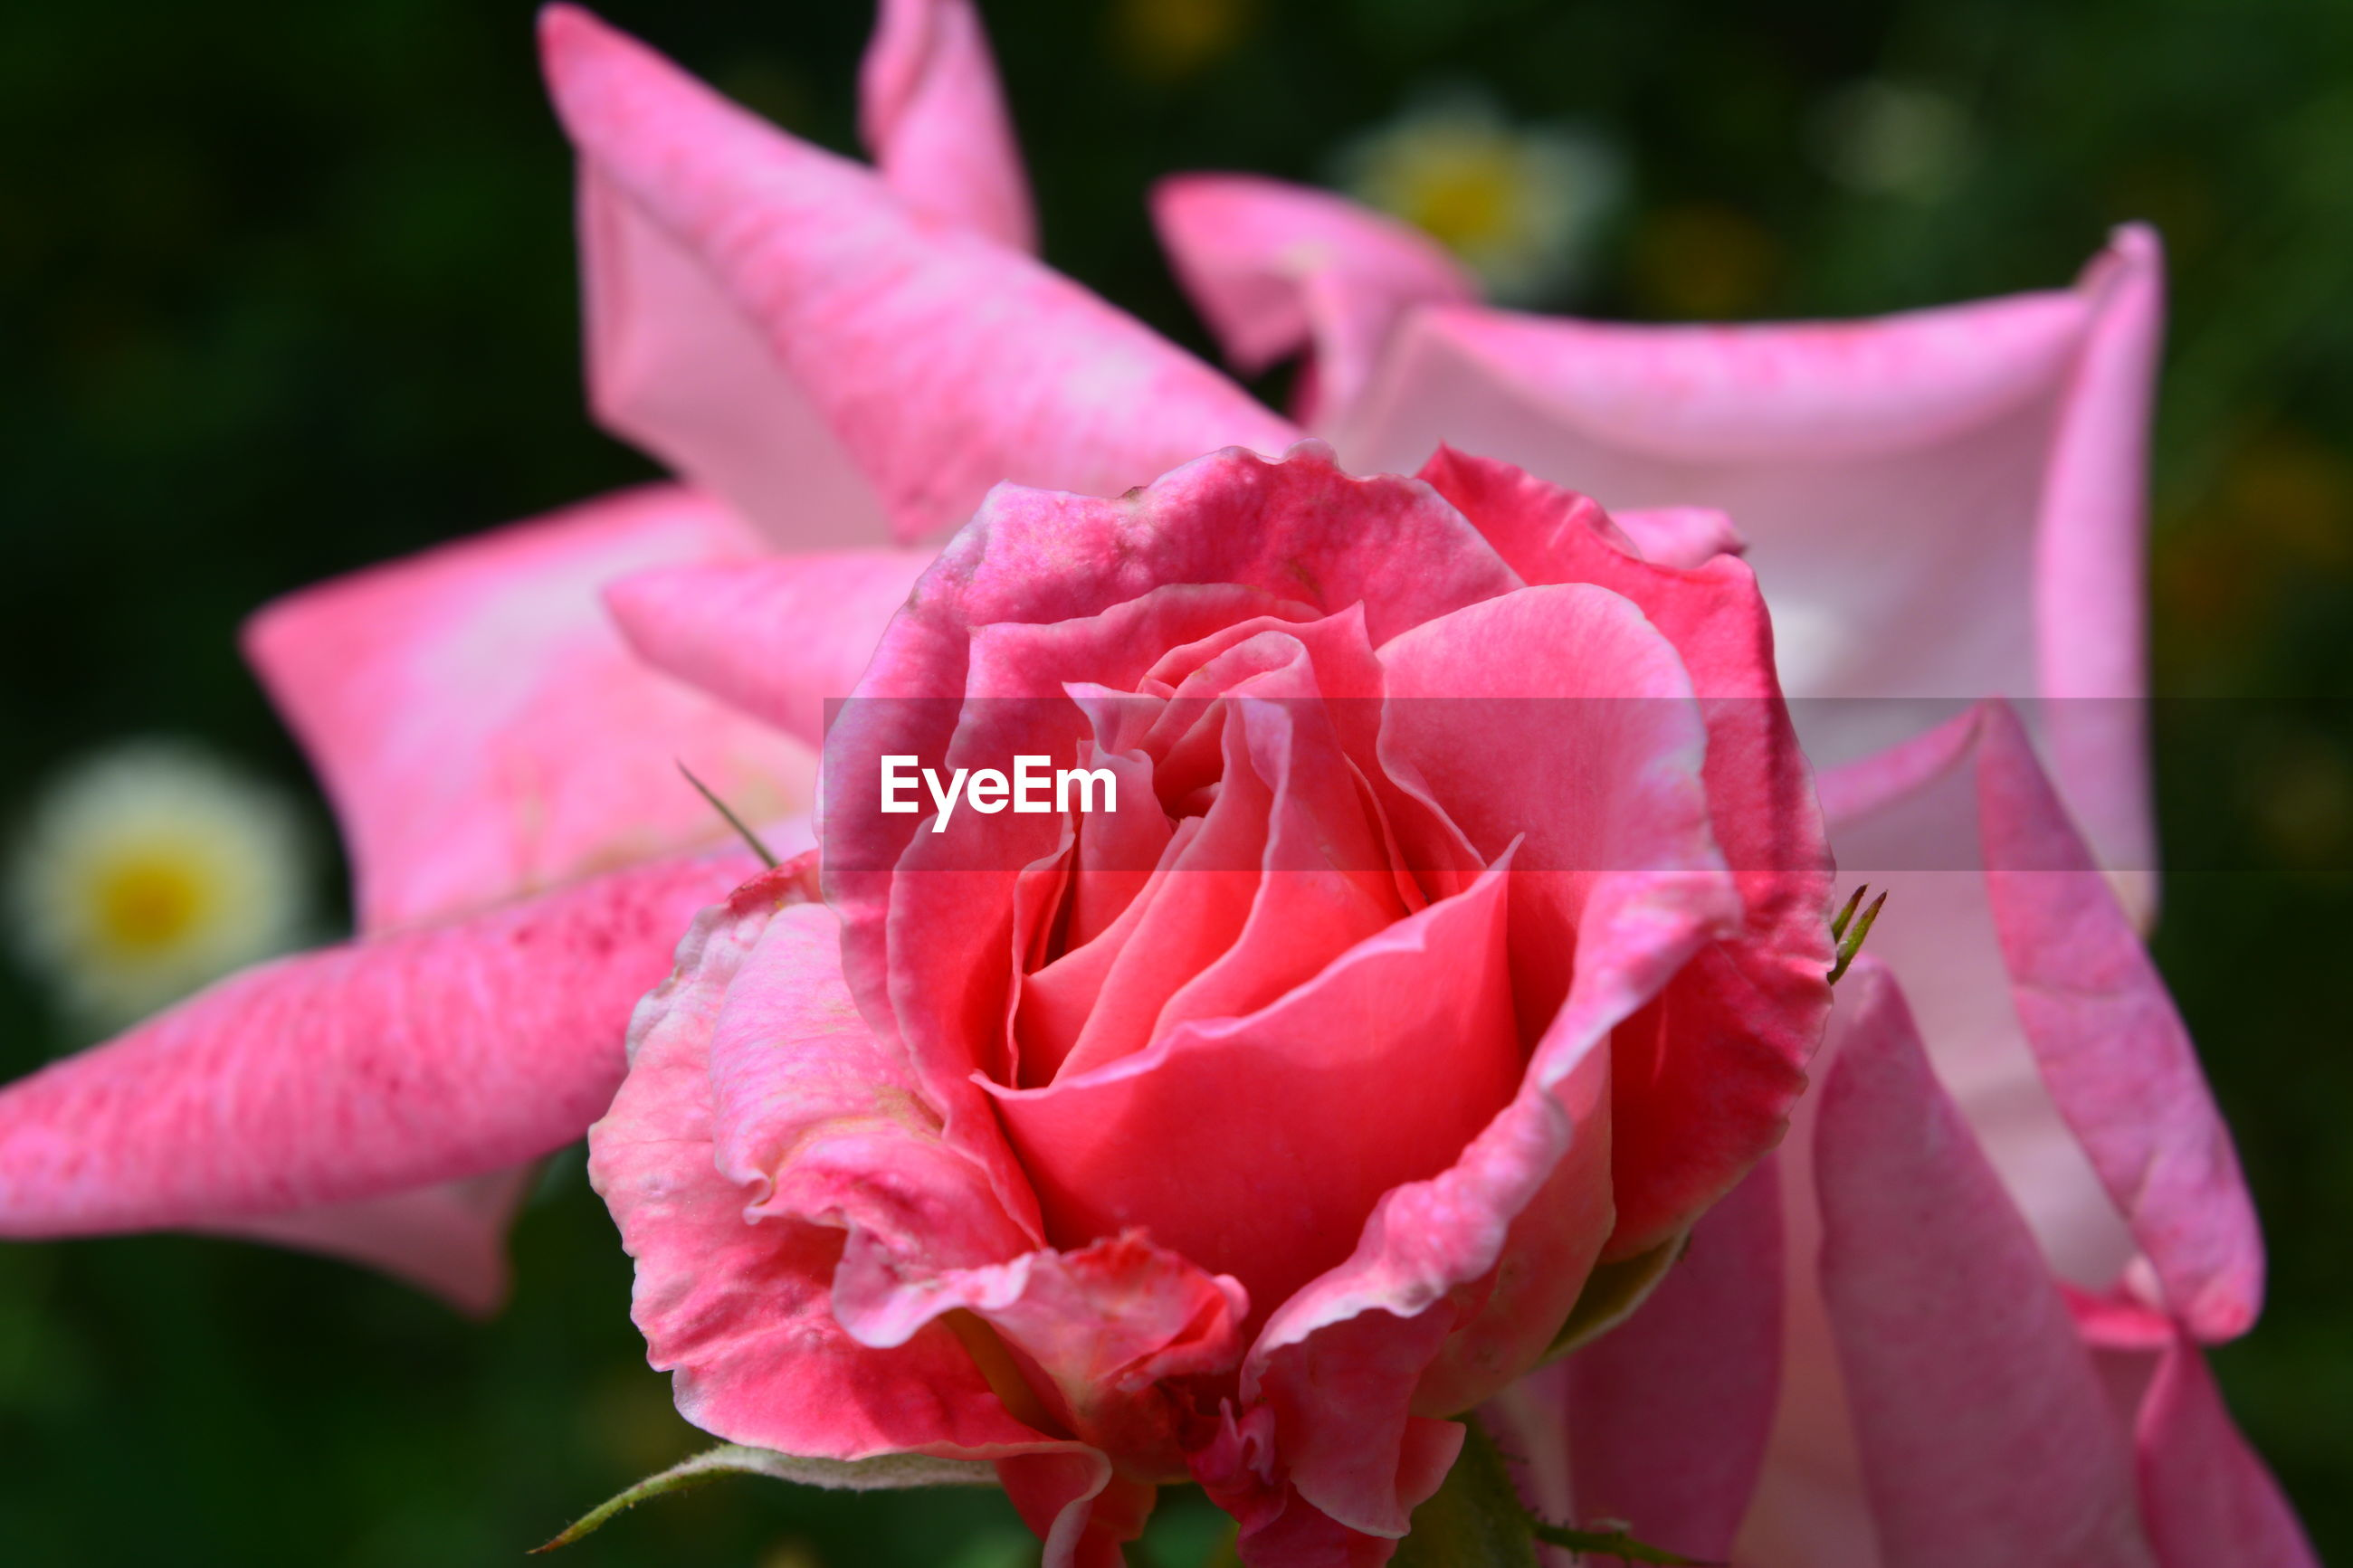 CLOSE-UP OF PINK ROSE PLANT